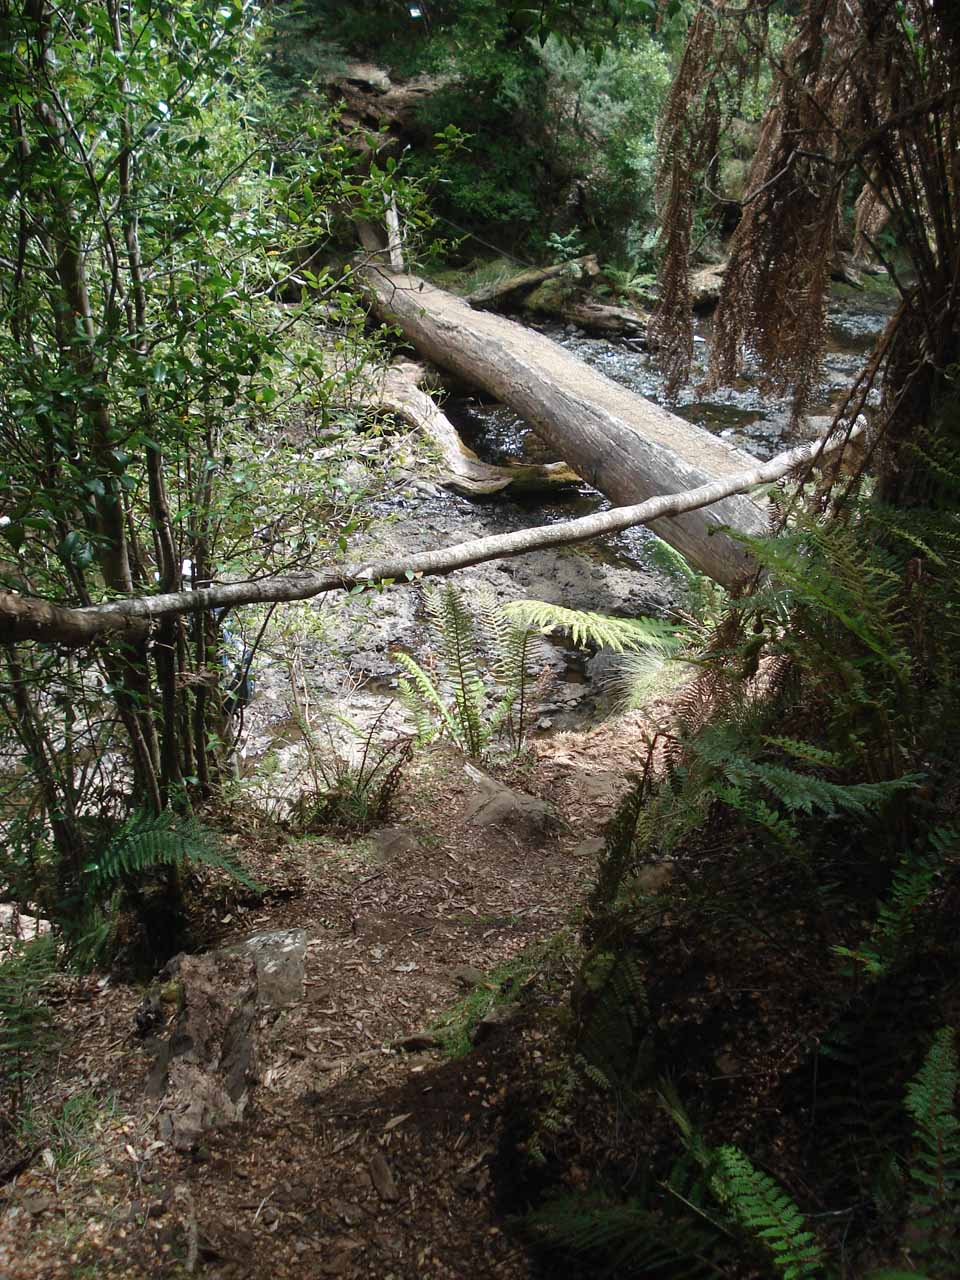 Looking back at the log bridge as we were about to rejoin the 4wd track back to the Lemonthyme Lodge